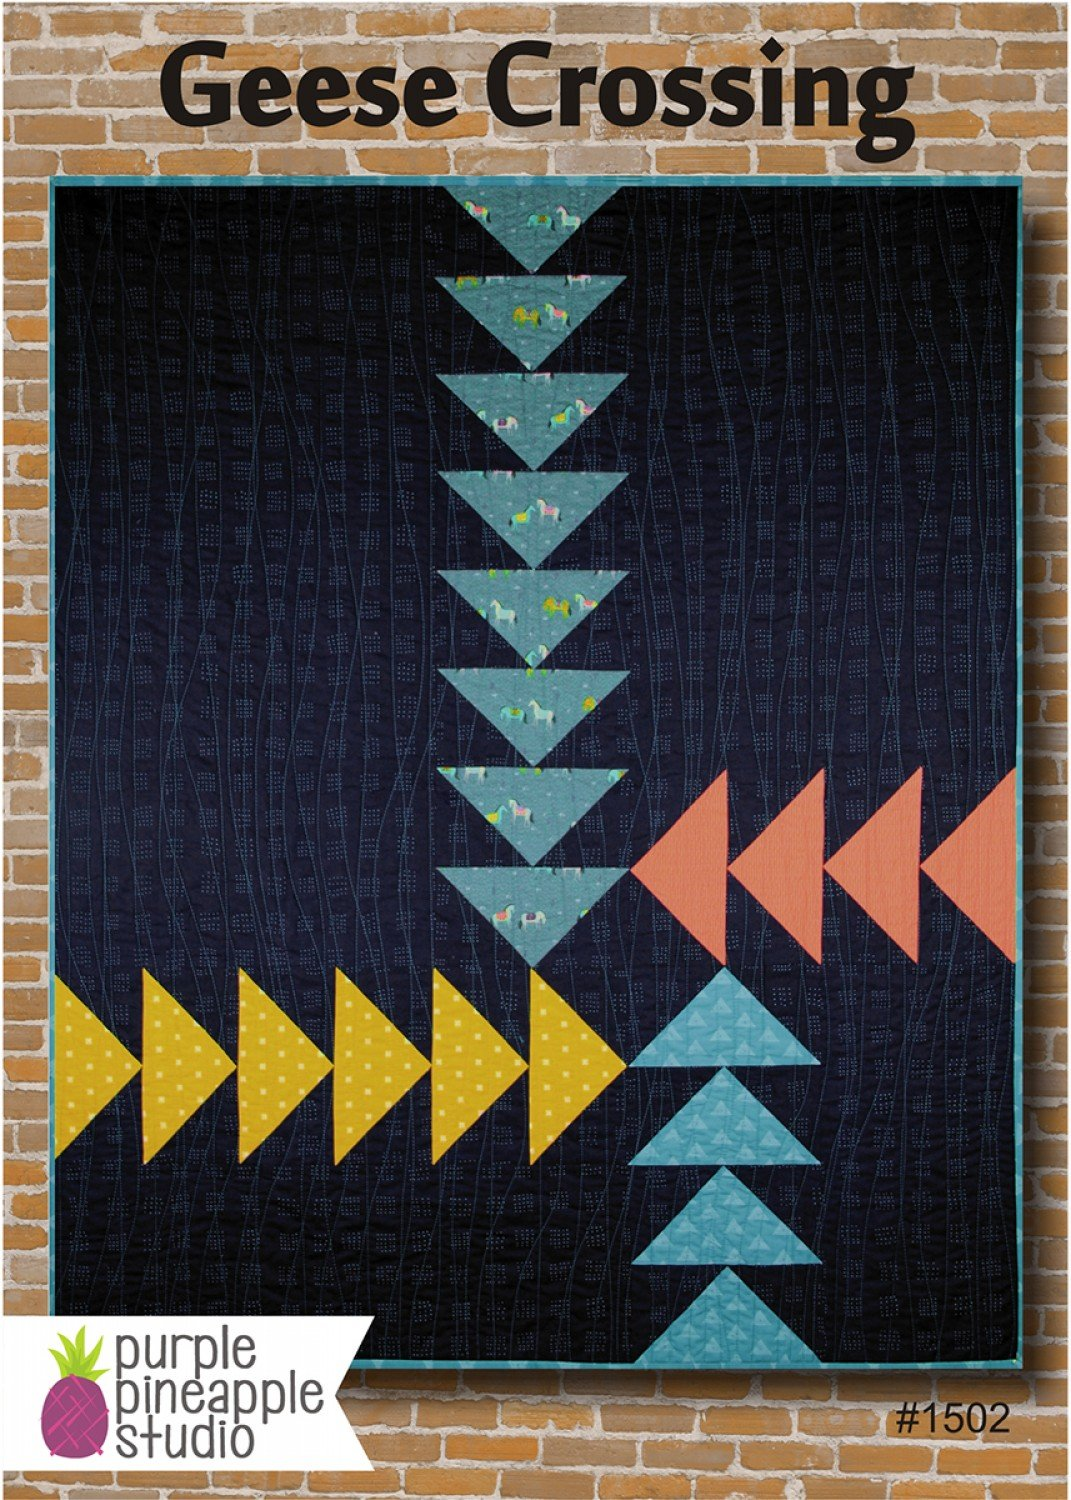 Geese Crossing Quilt Kit!